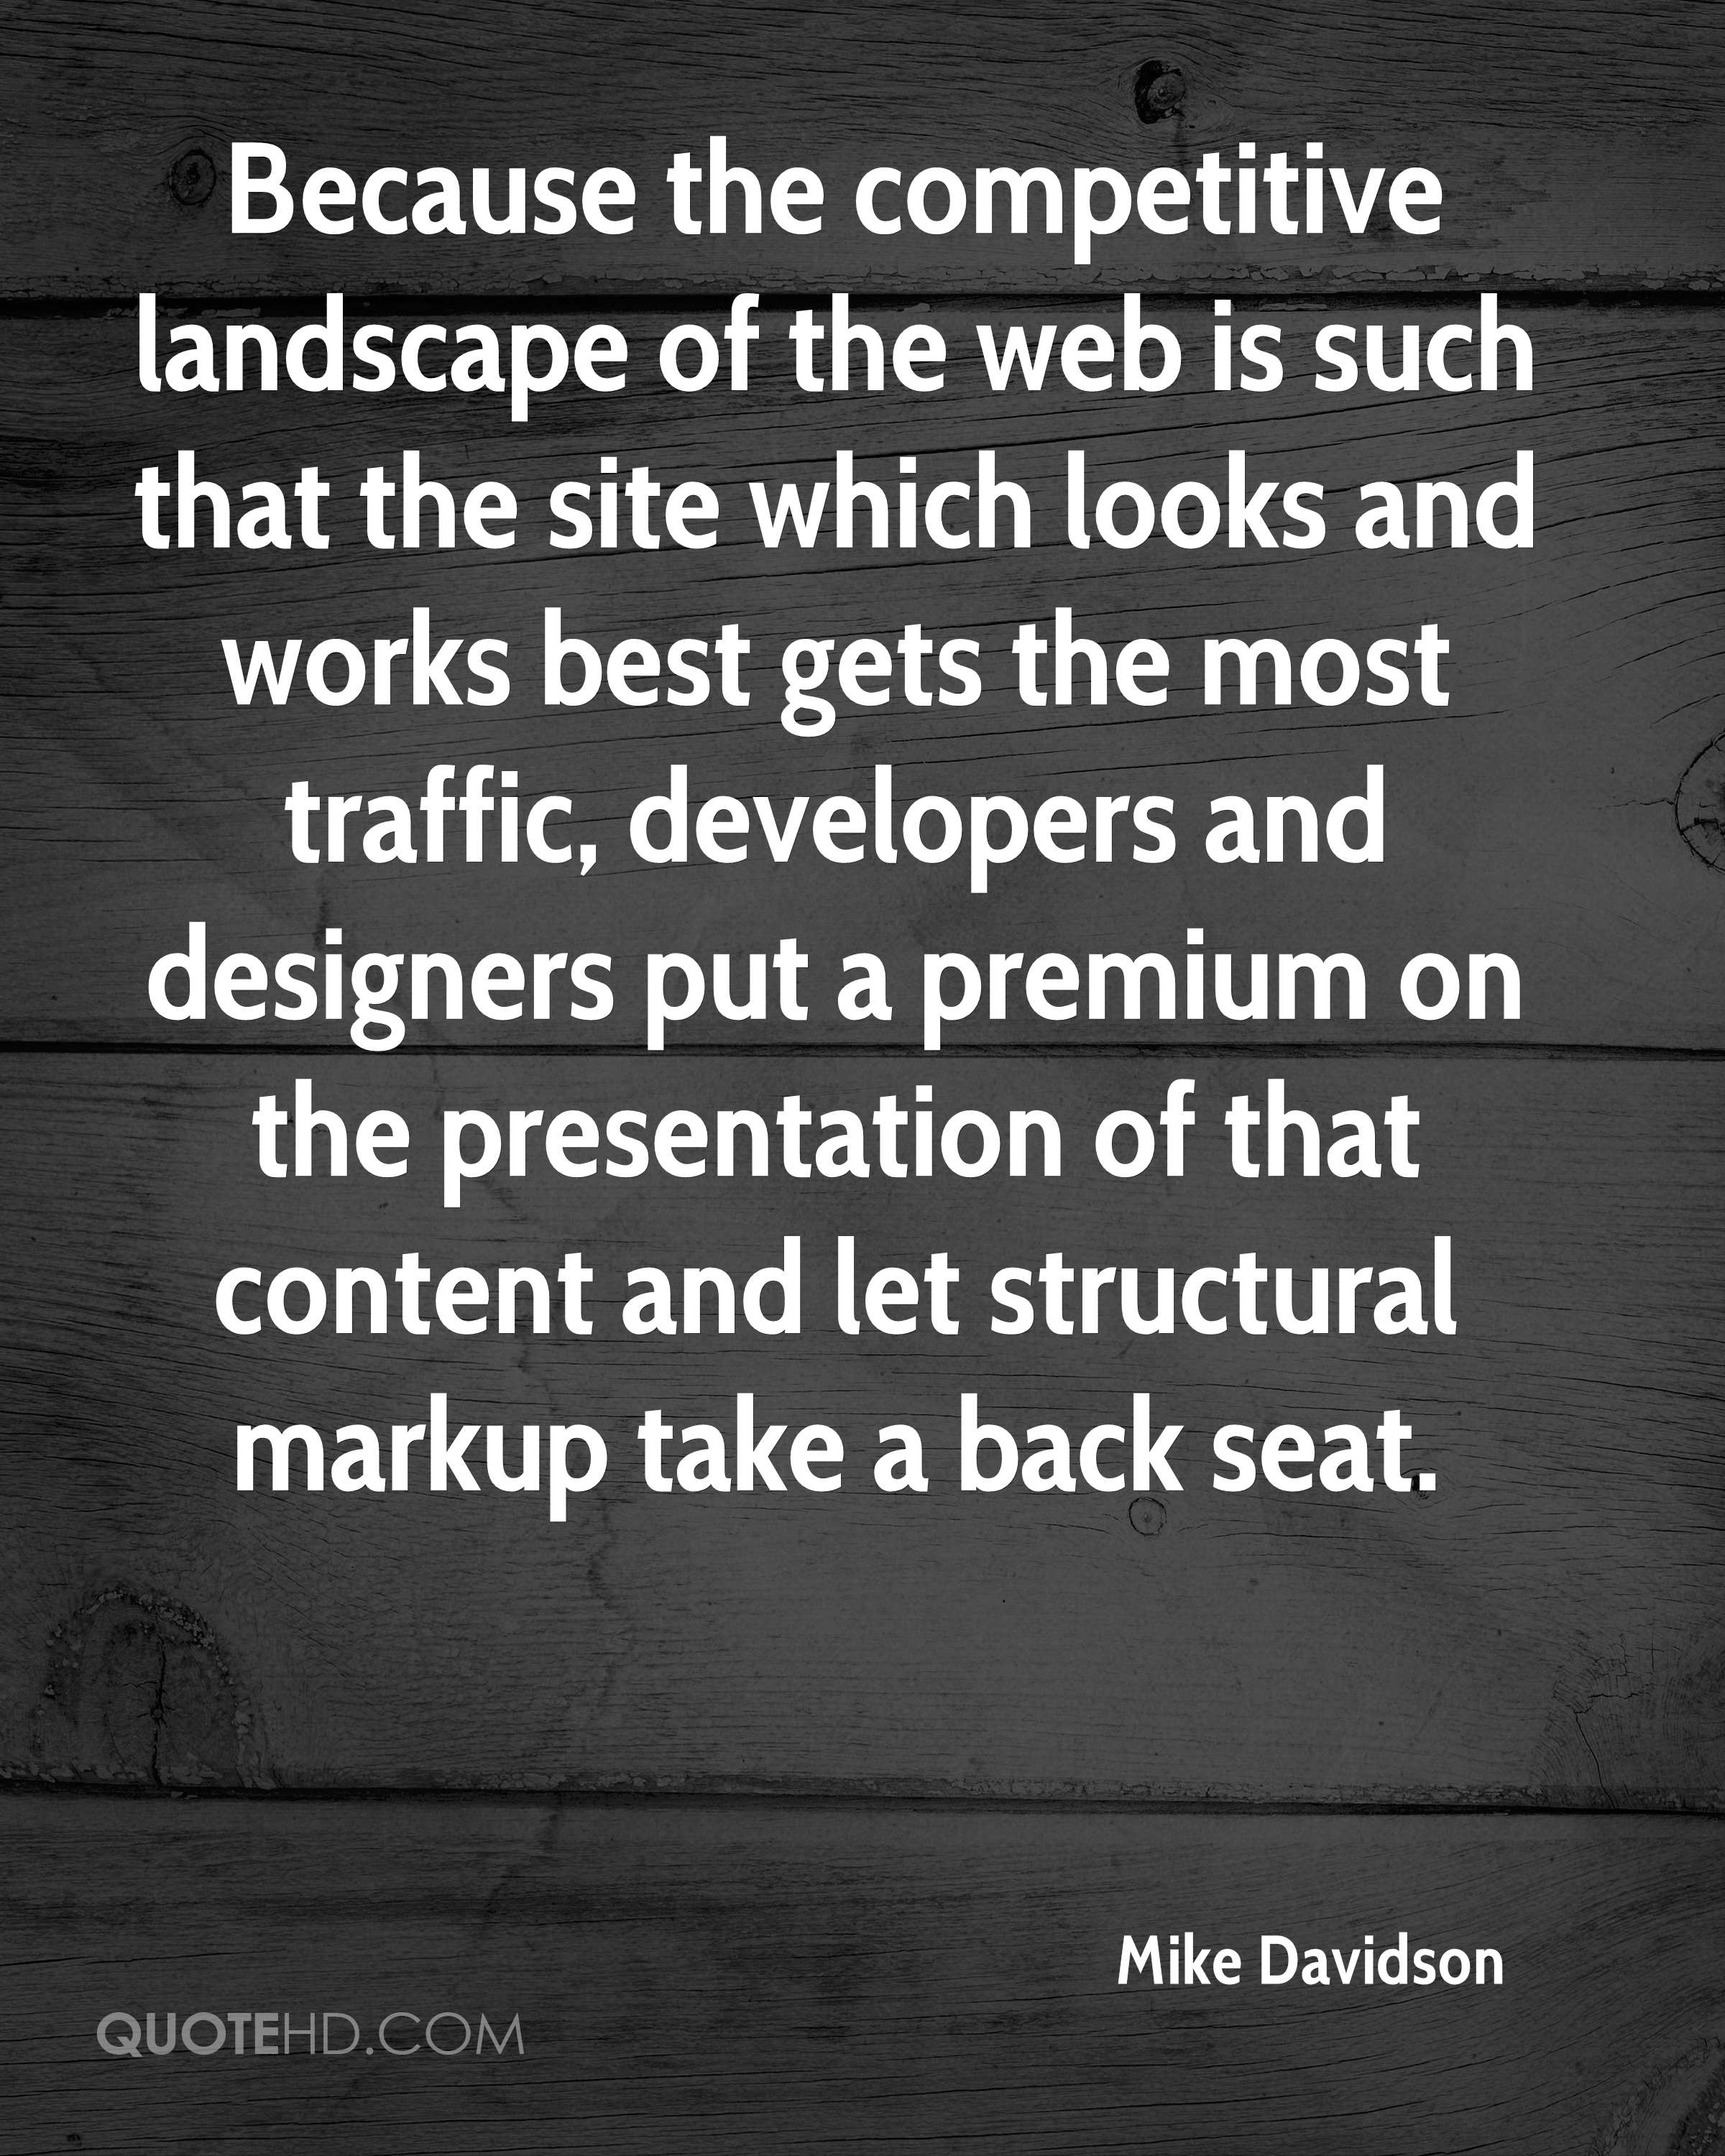 Because the competitive landscape of the web is such that the site which looks and works best gets the most traffic, developers and designers put a premium on the presentation of that content and let structural markup take a back seat.